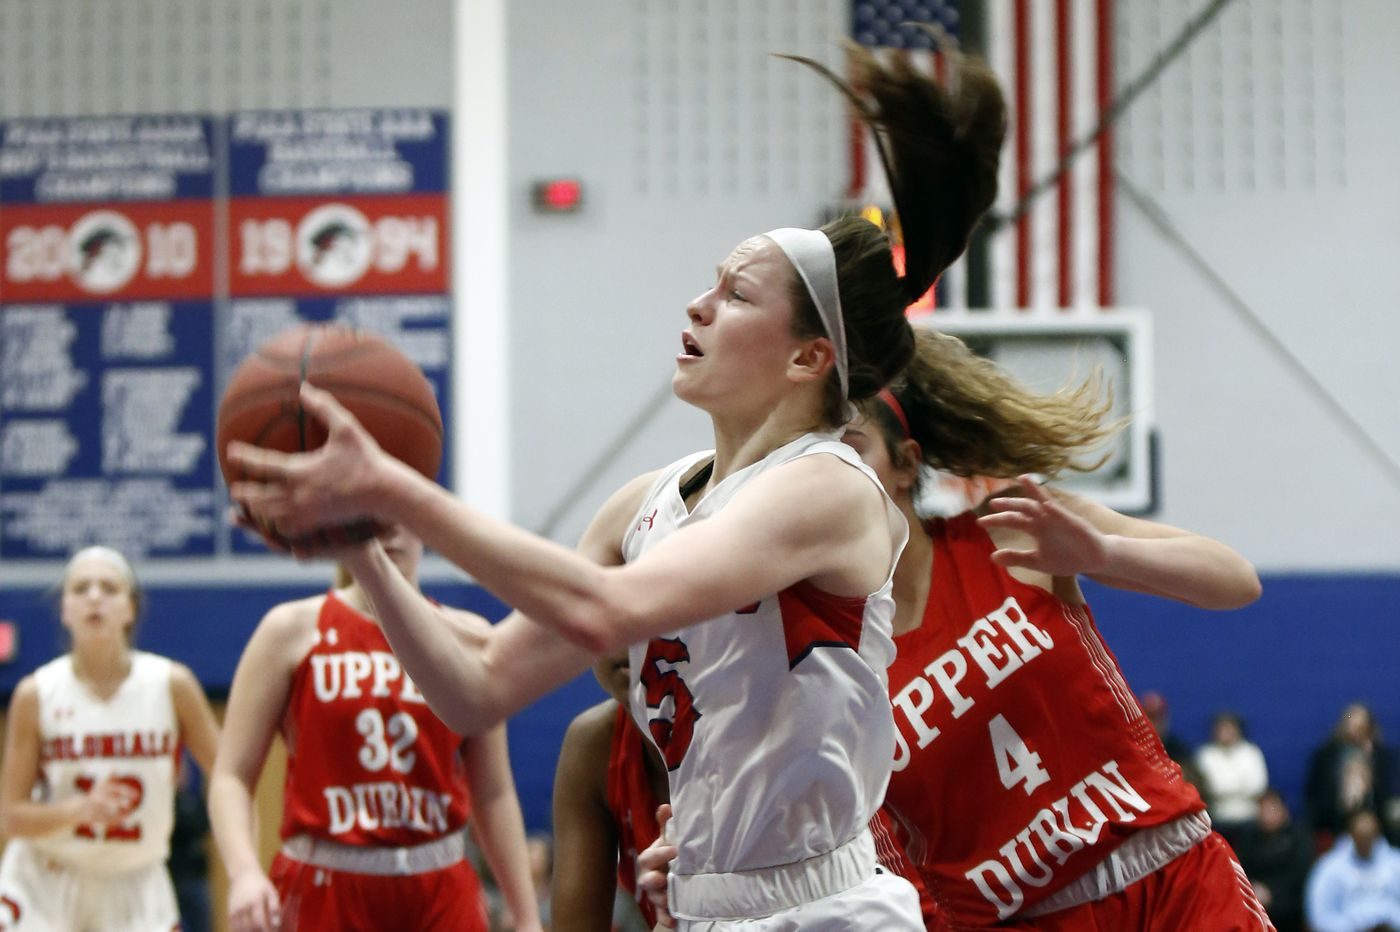 Anna McTamney takes control as Plymouth Whitemarsh tops Upper Dublin in district quarterfinal